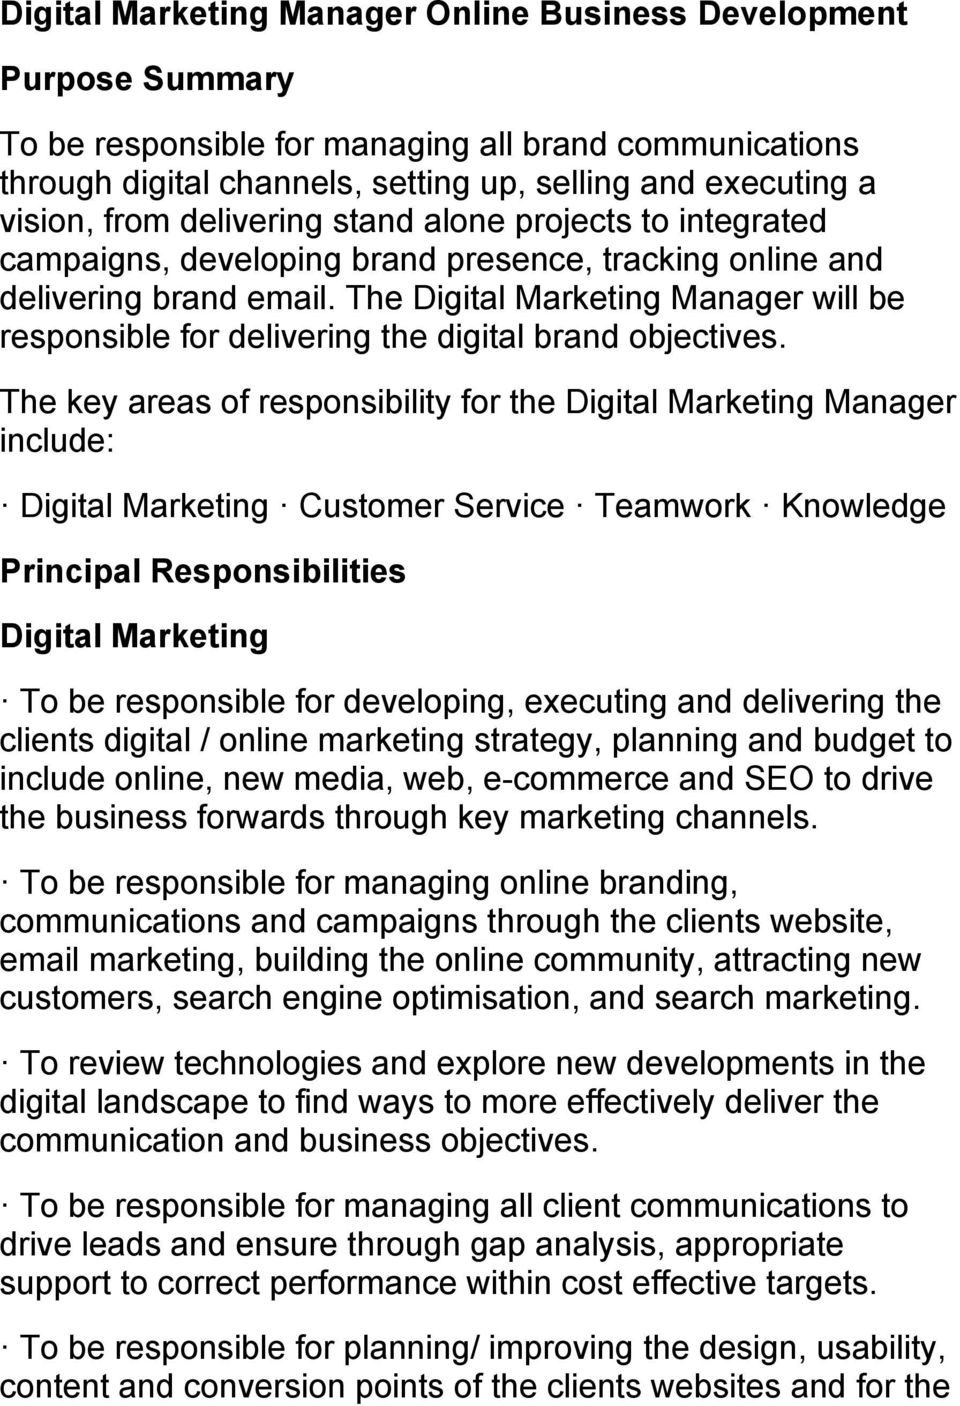 The Digital Marketing Manager will be responsible for delivering the digital brand objectives.